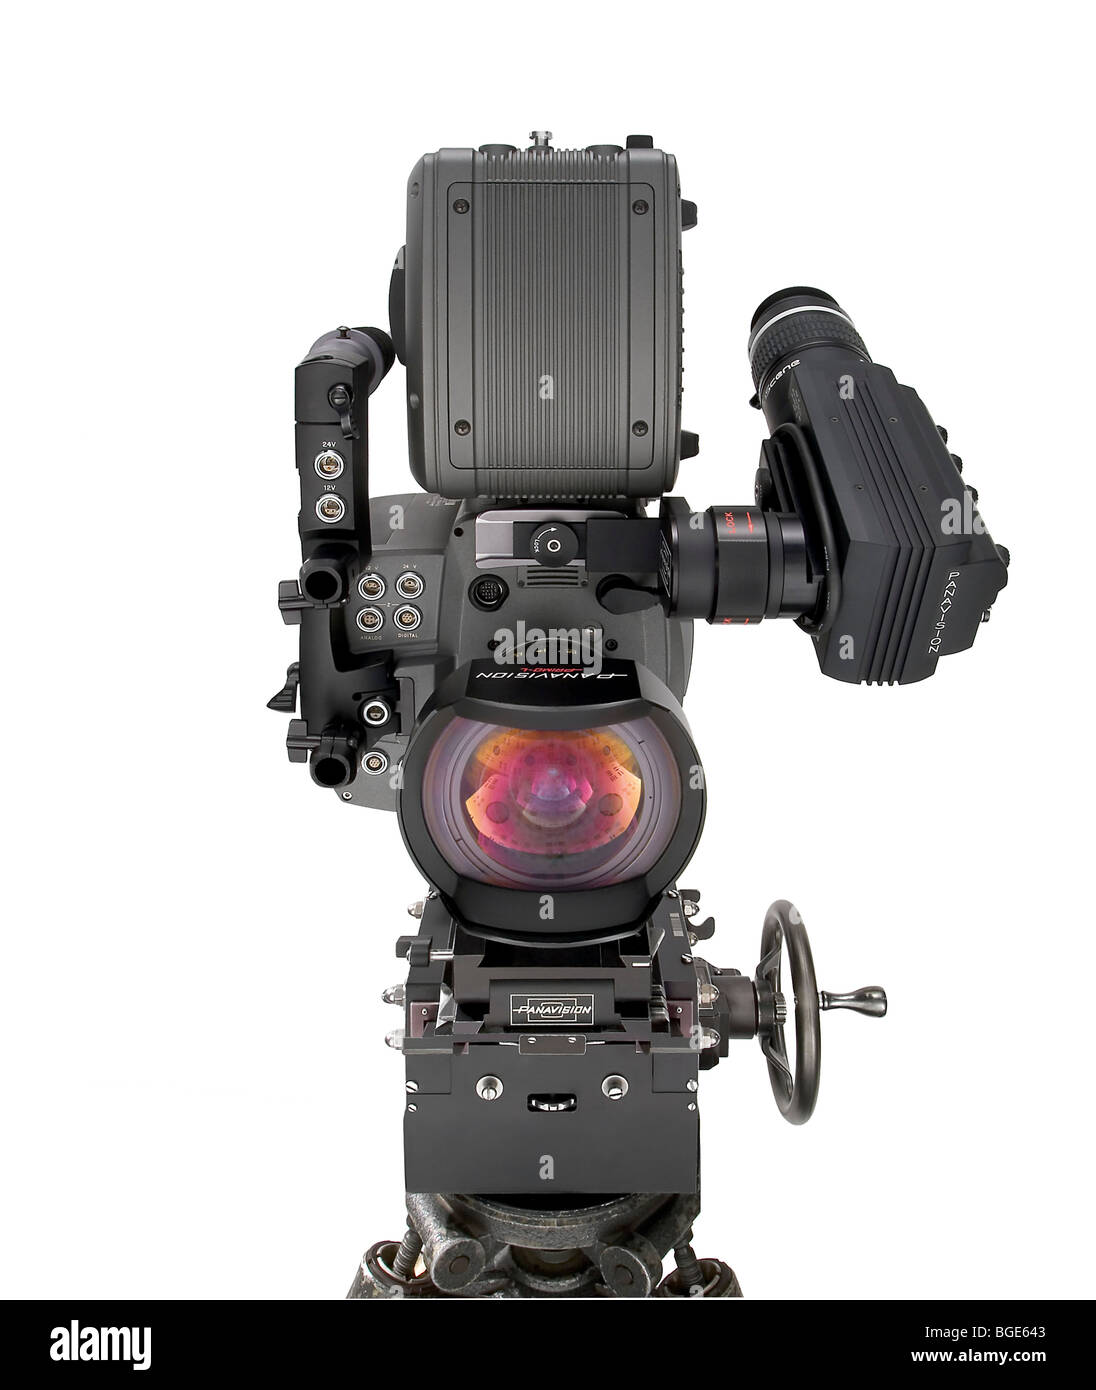 Studio Product Shot Of A Panavision Genesis Modern Digital Movie Camera Unusual Angle Nice Lens Refection